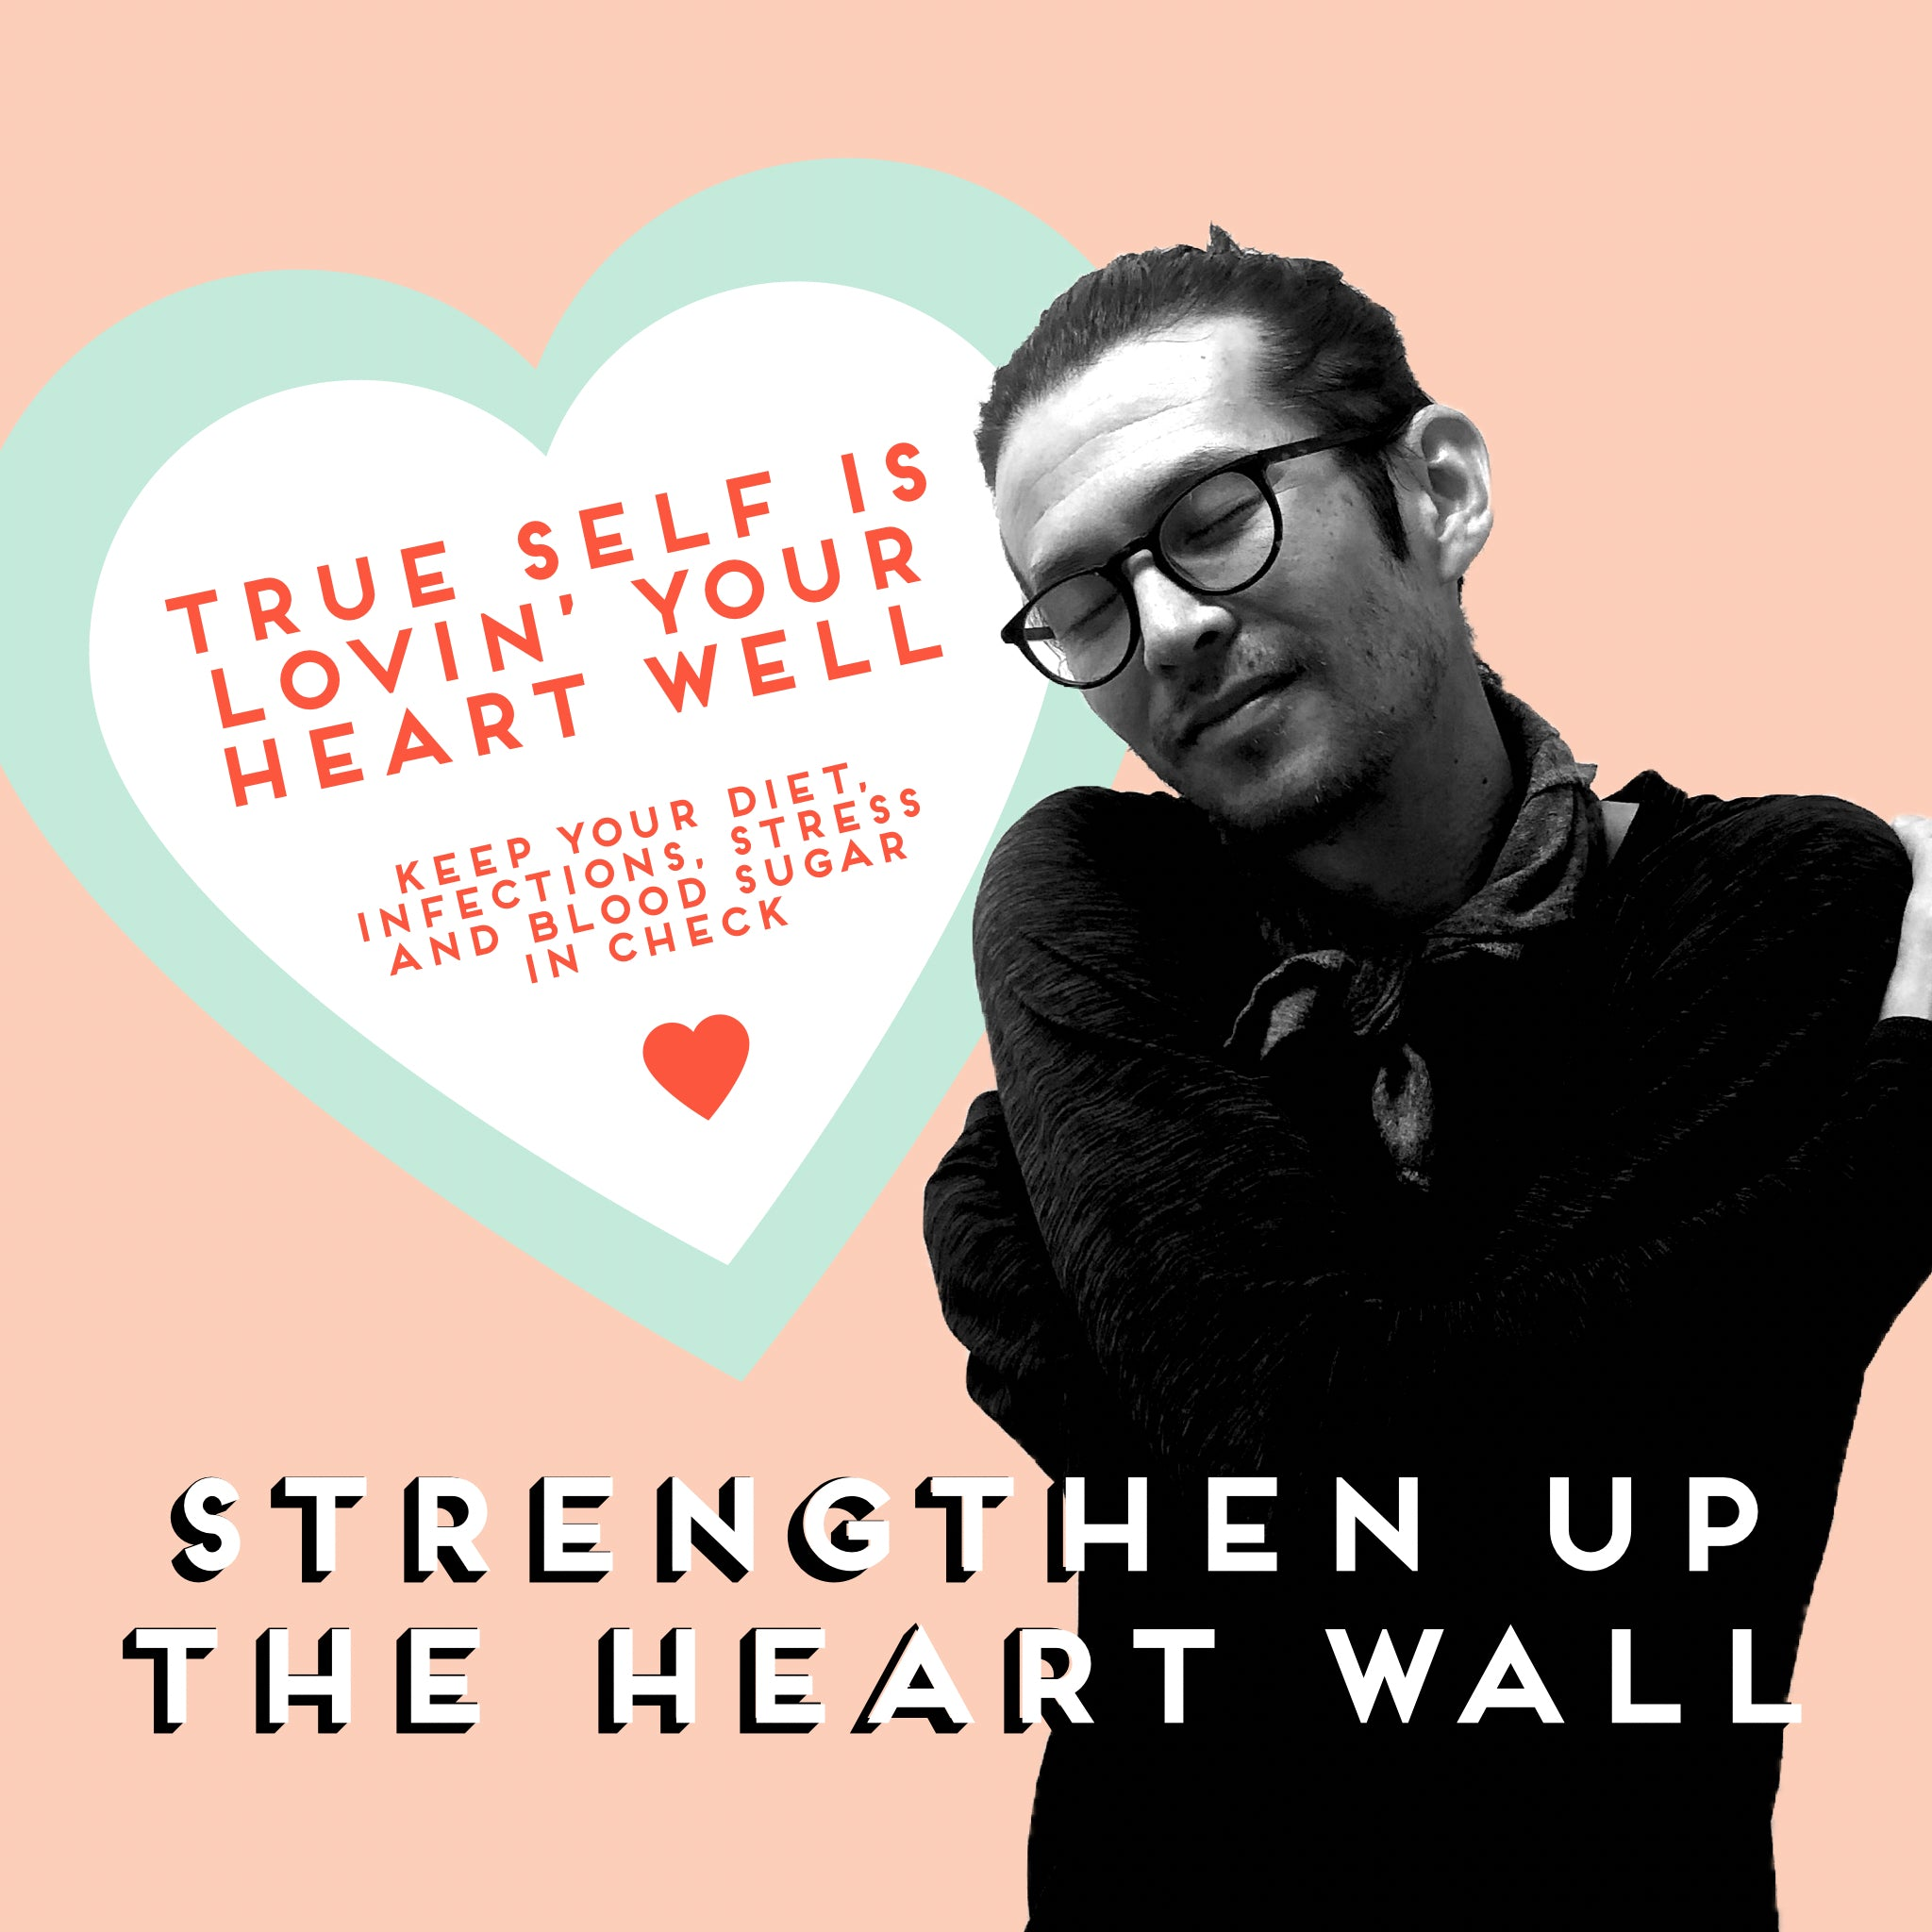 Doctor Motley - Strong Heart Wall